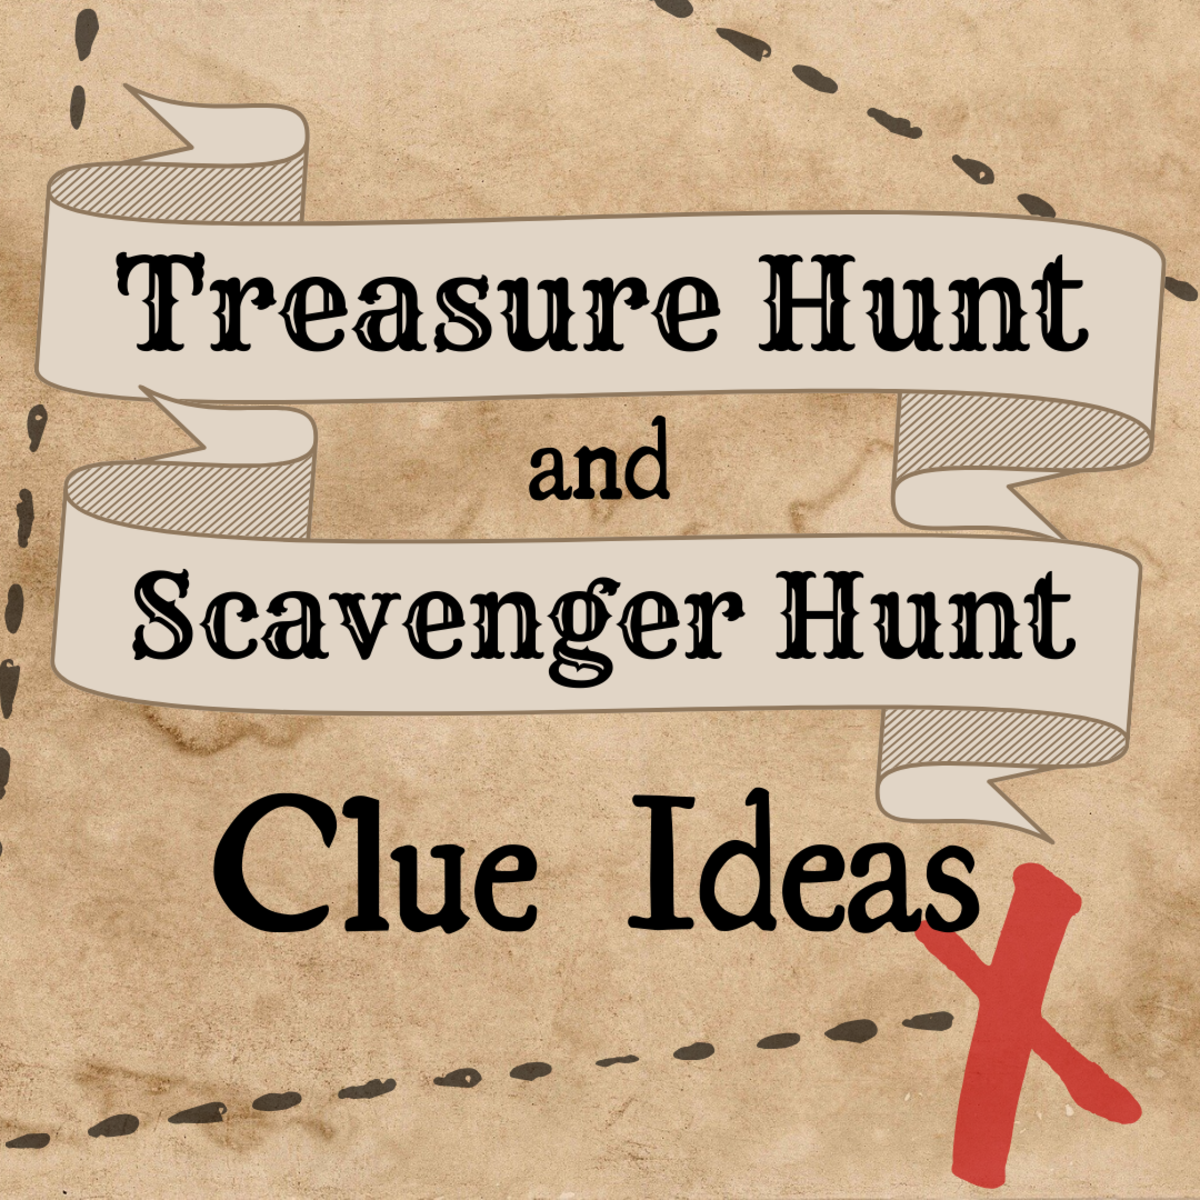 10 Best Treasure Hunt And Scavenger Hunt Clue Ideas Hobbylark Games And Hobbies